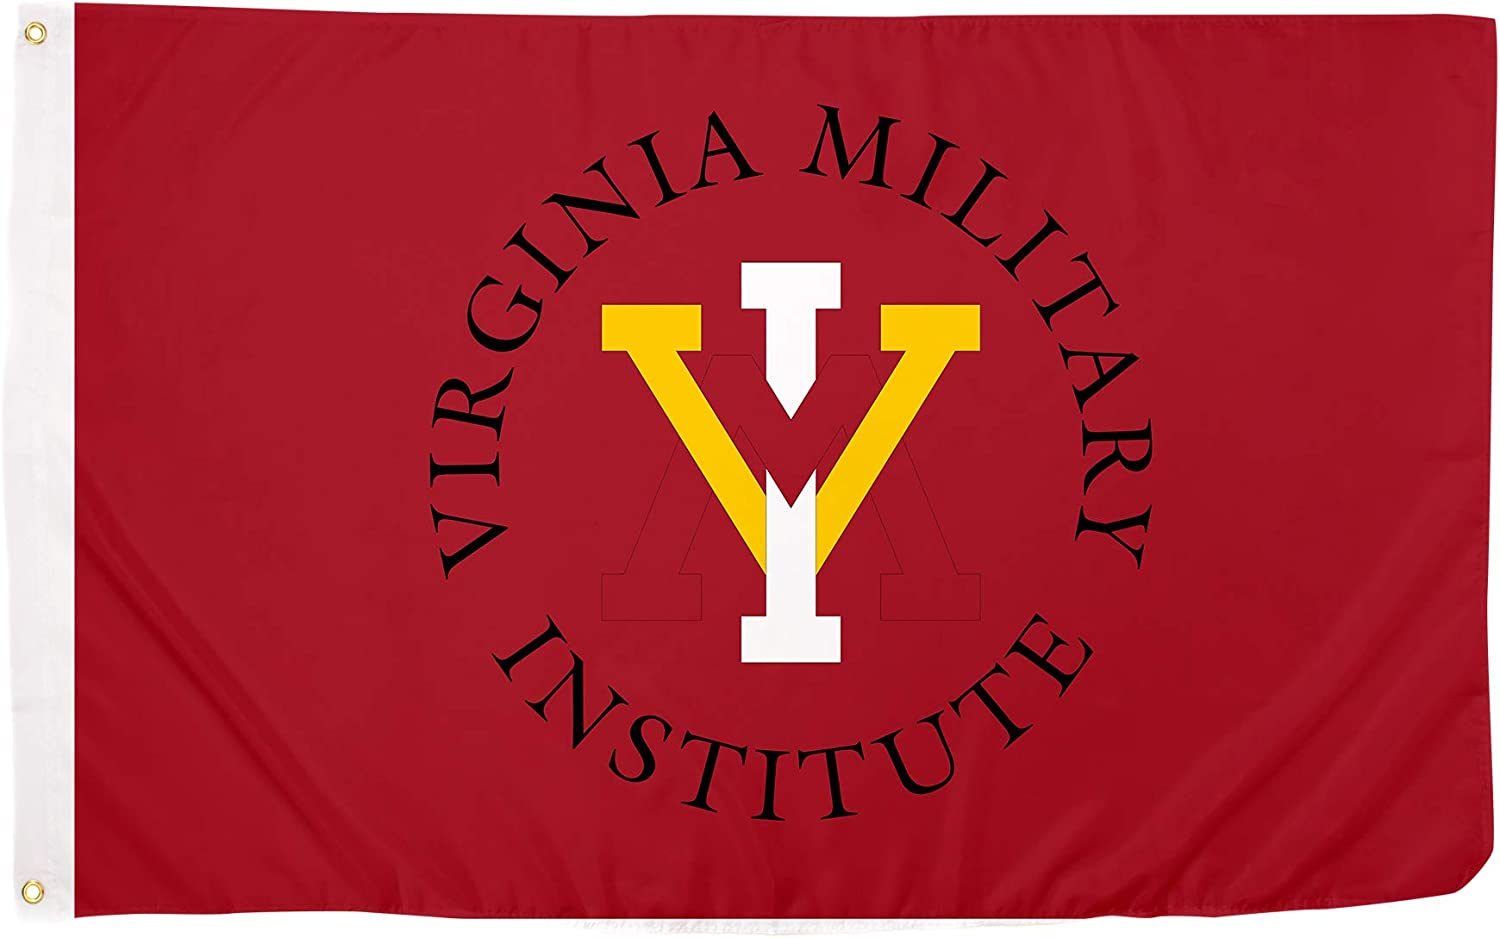 Desert Cactus Virginia Military Institute VMI Keydets NCAA 100% Polyester Indoor Outdoor 3 feet x 5 feet Flag